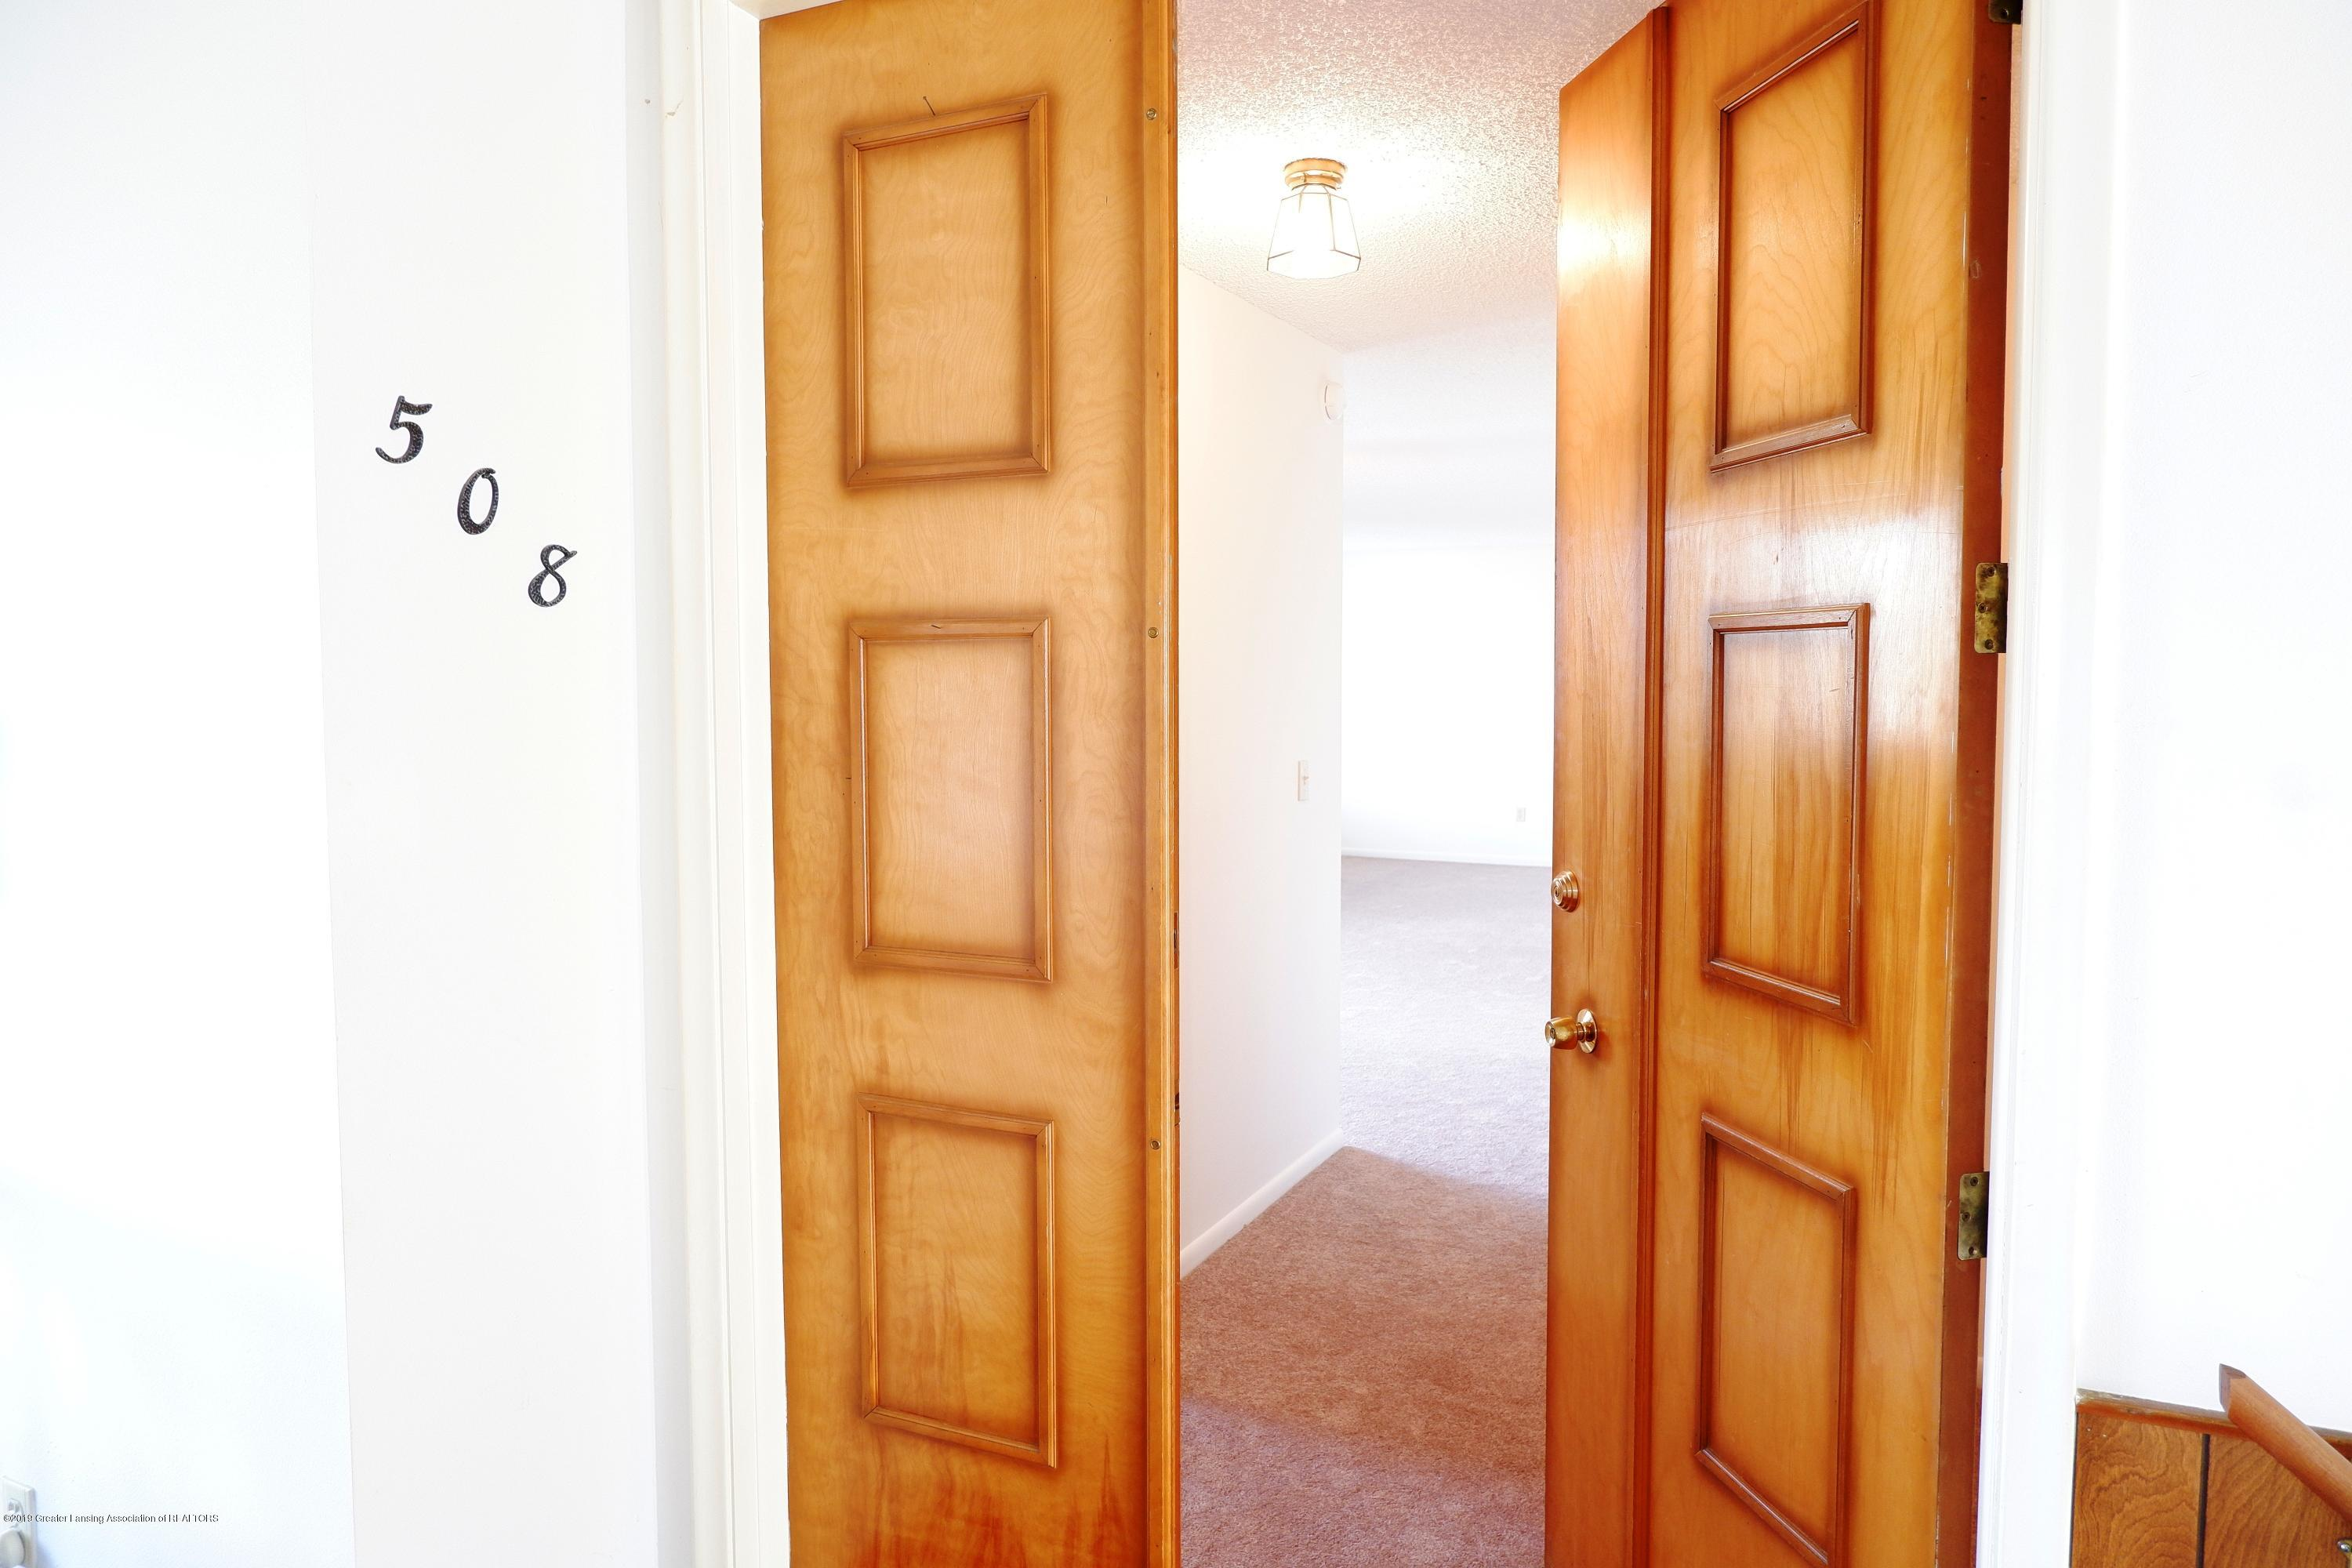 3333 Moores River Dr Apt 508 - Pretty wide entry door - 5